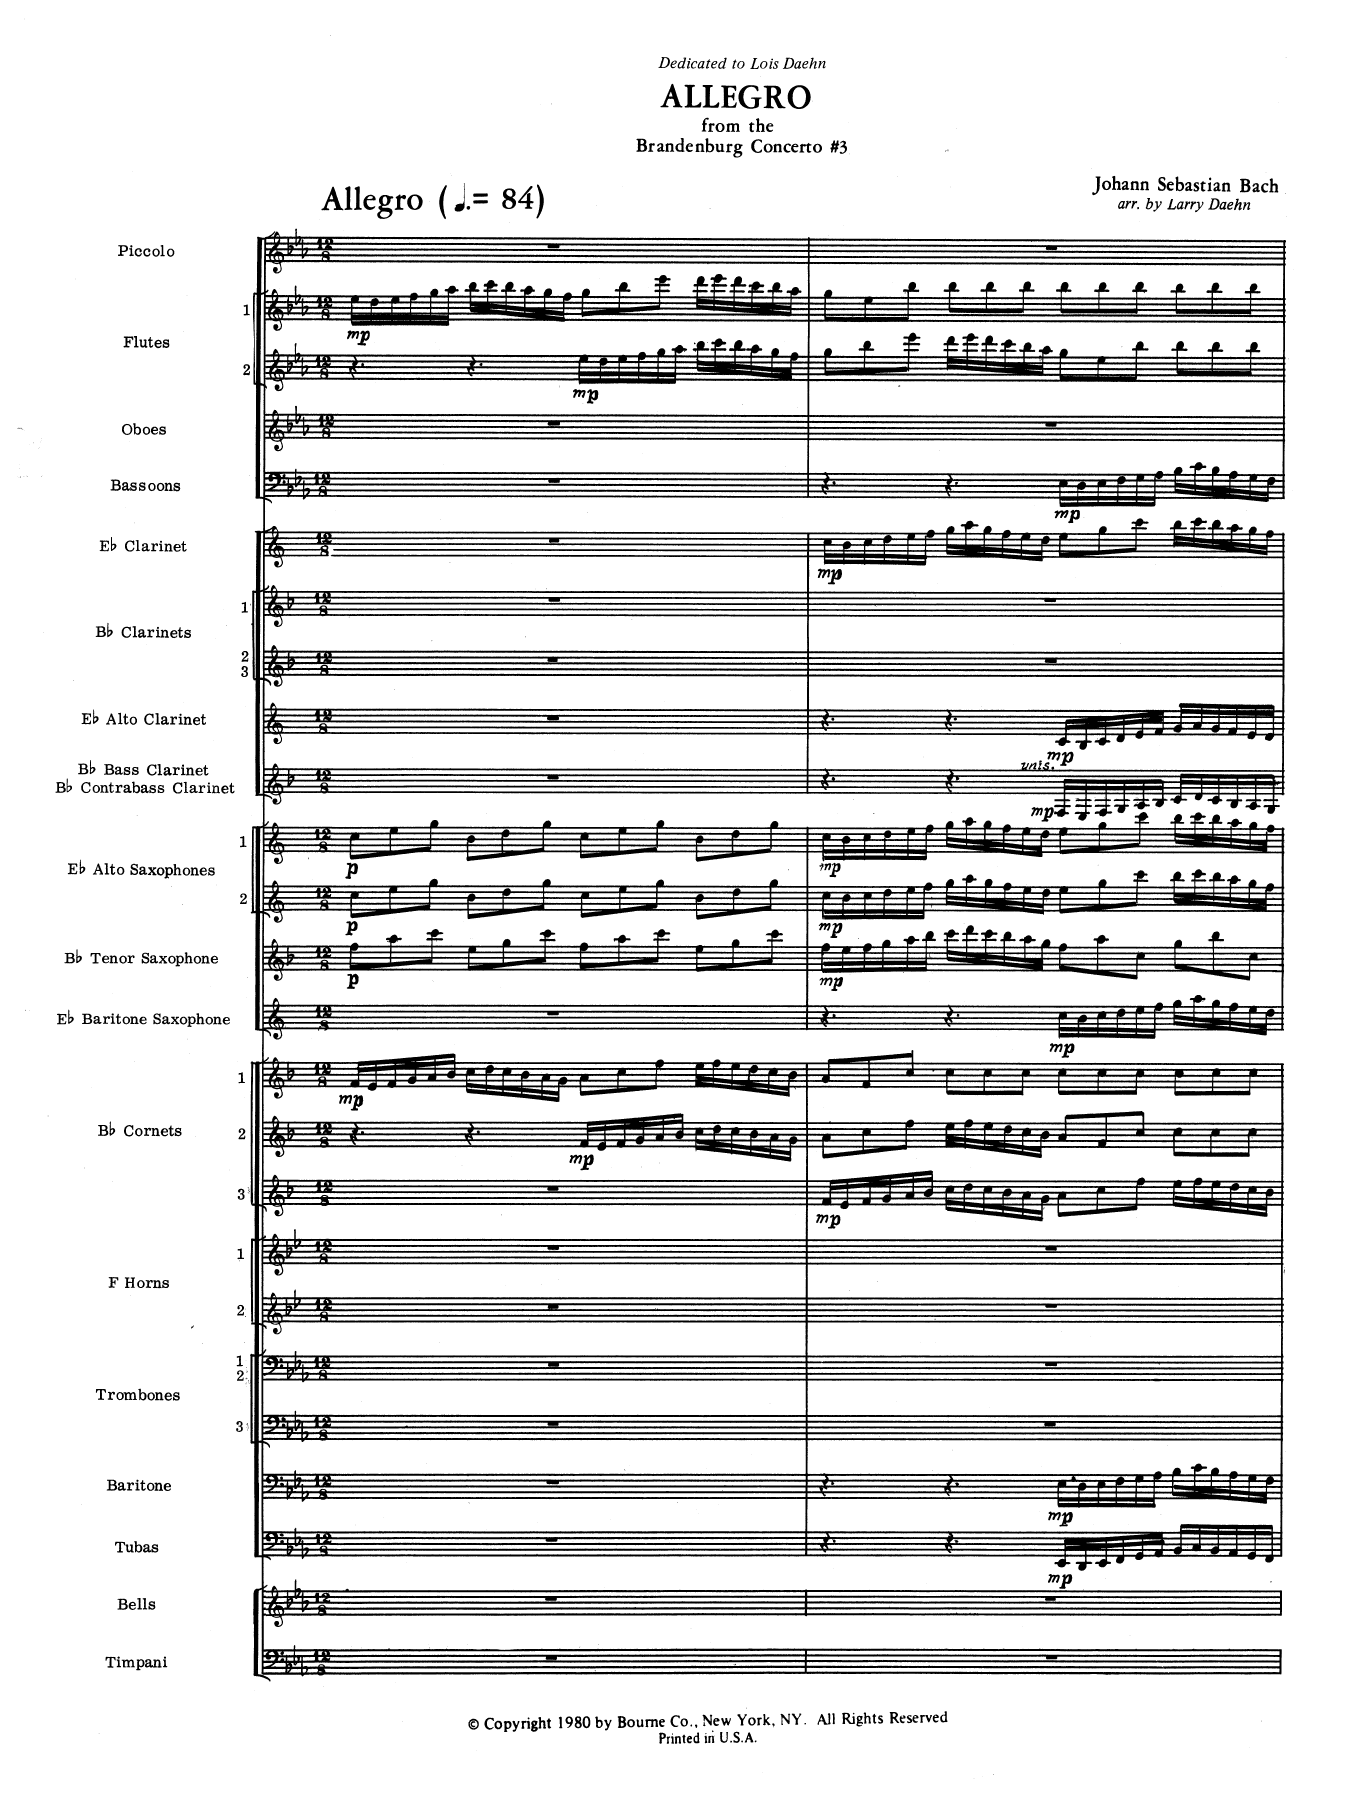 Allegro from Brandenburg Concerto No. 3 (COMPLETE) sheet music for concert band by Larry Daehn and Johann Sebastian Bach. Score Image Preview.